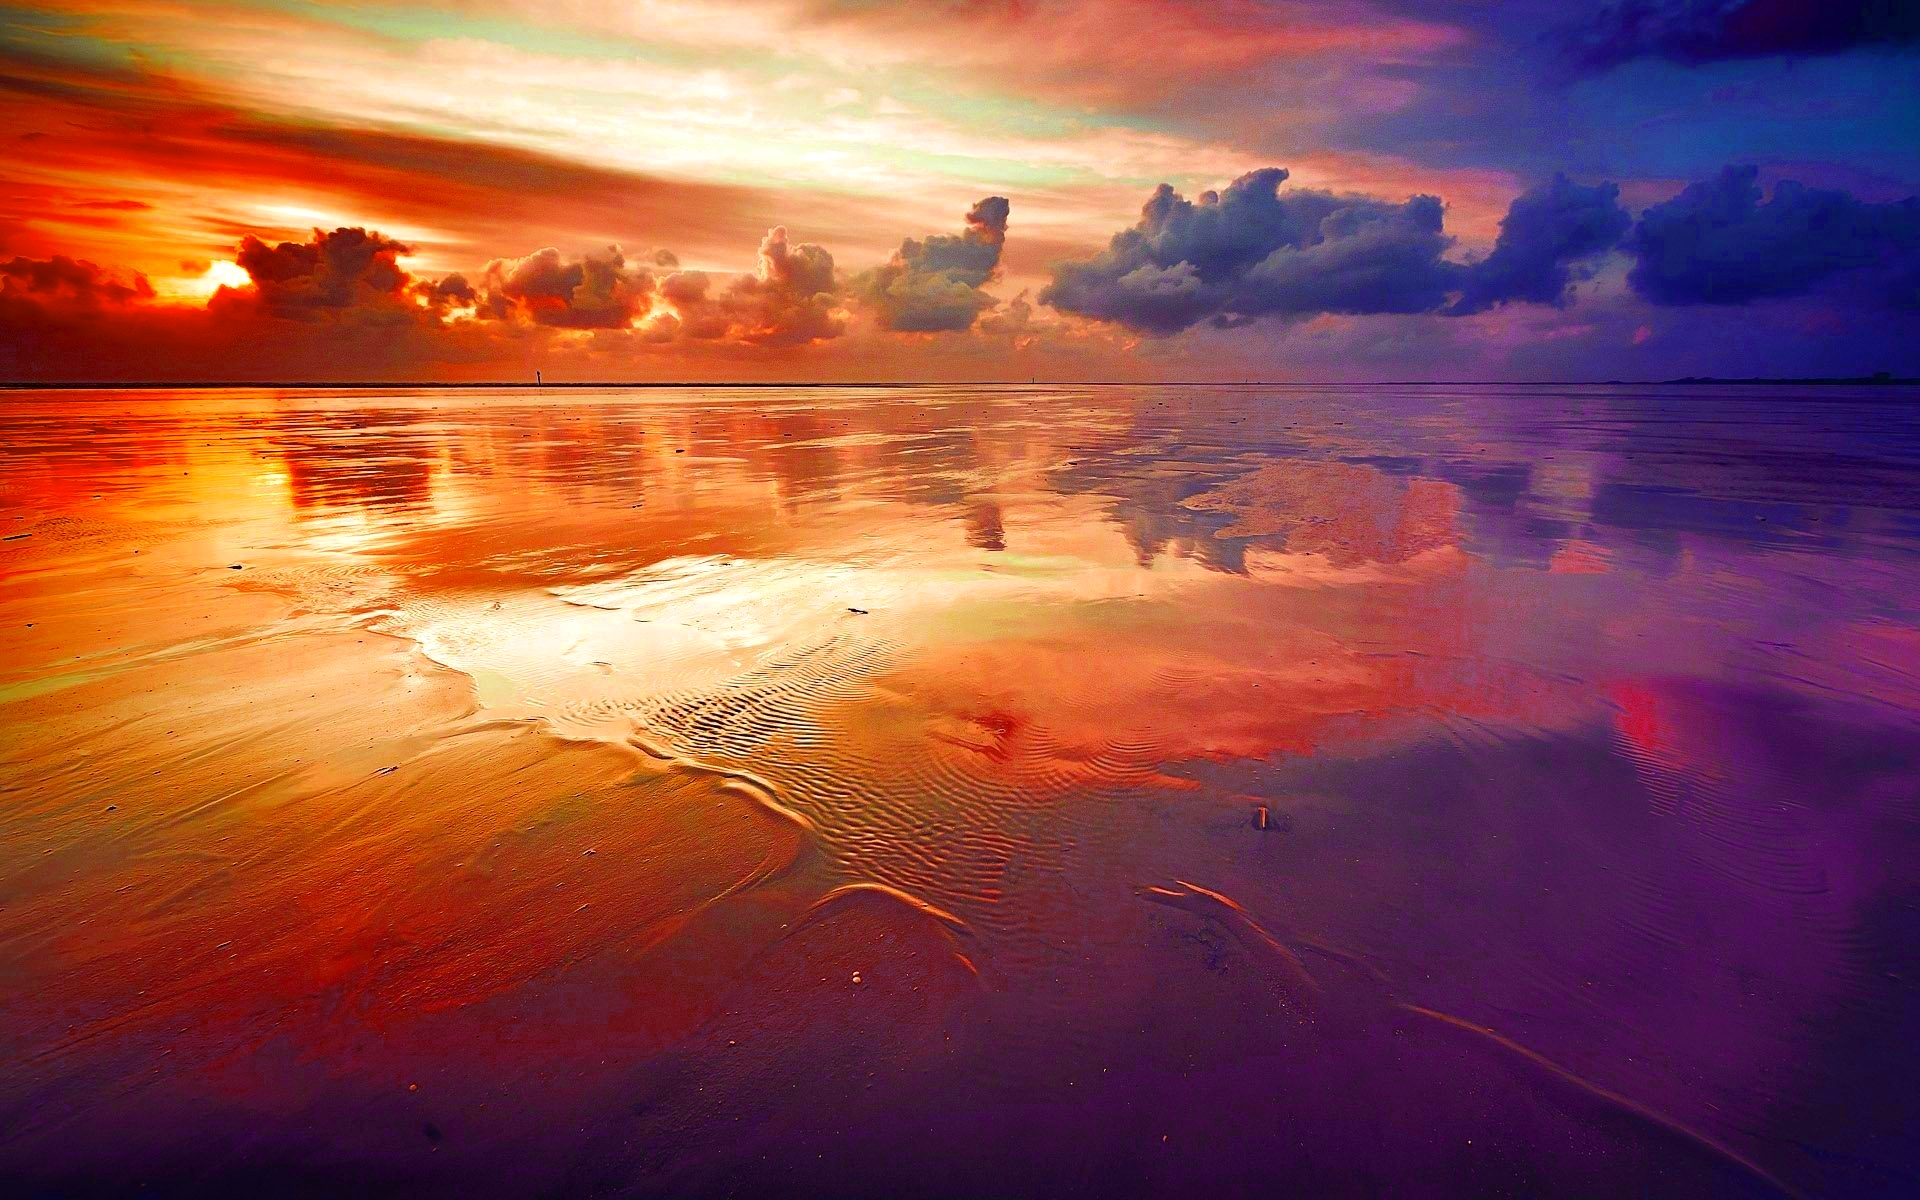 Sunset Cloud Water Sand 1920x1200